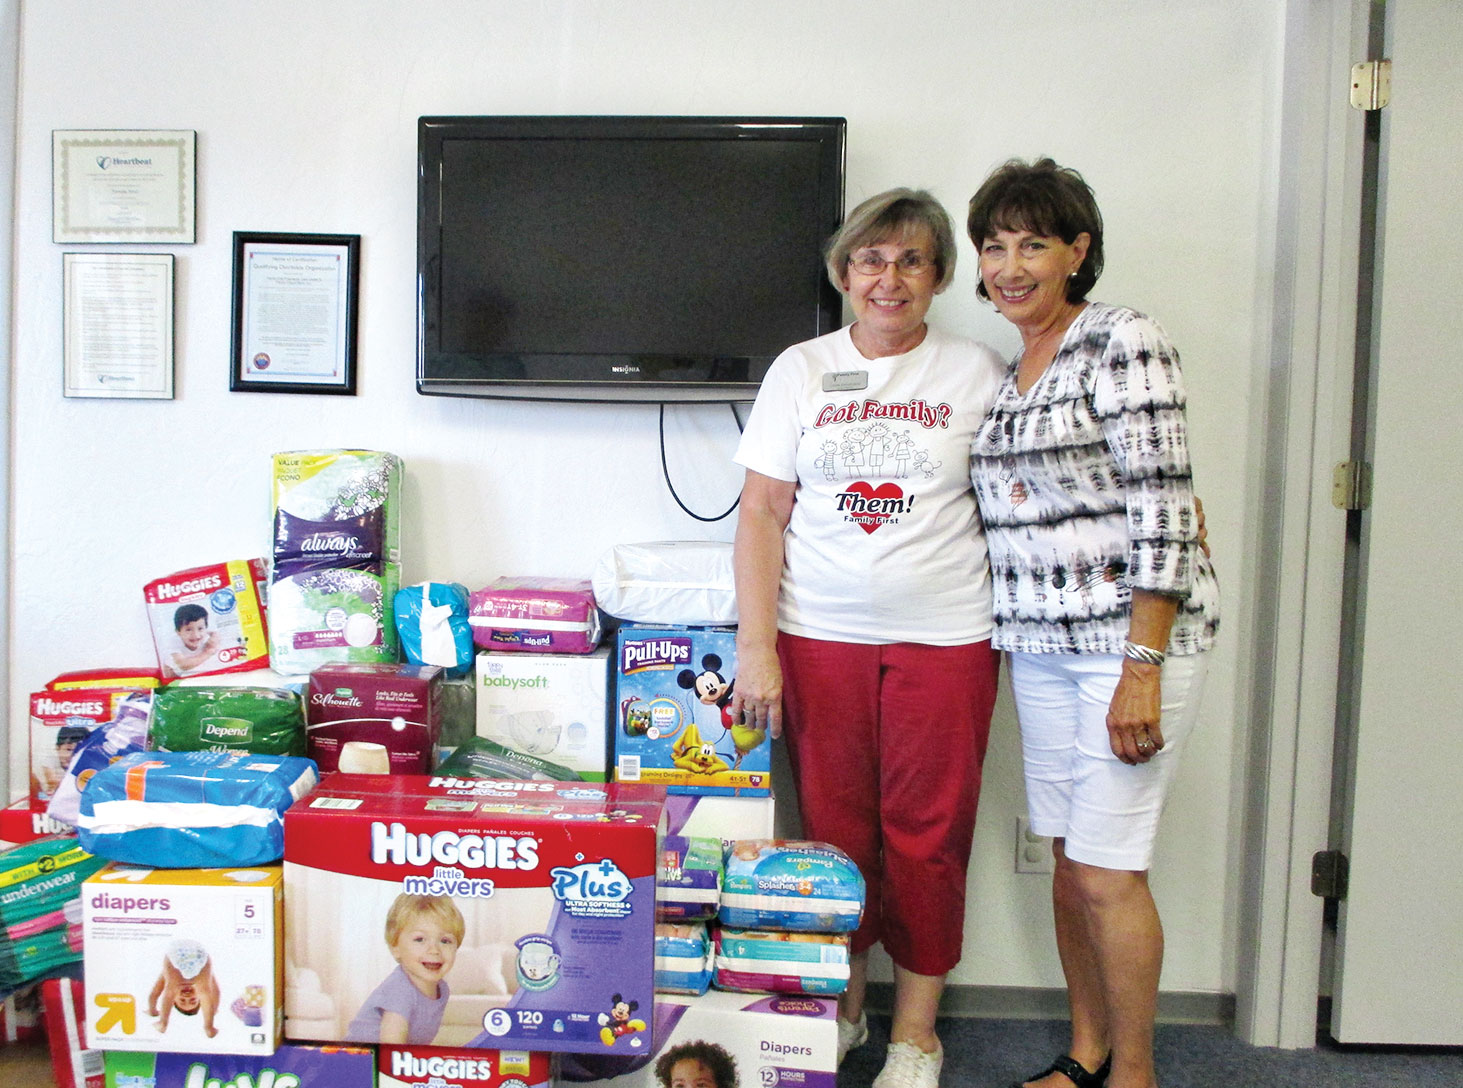 Director of the Family First Pregnancy Care and Diaper Bank, Clare Grochocki and Missions Liaison Cathy Scott from The Community Church at SaddleBrooke